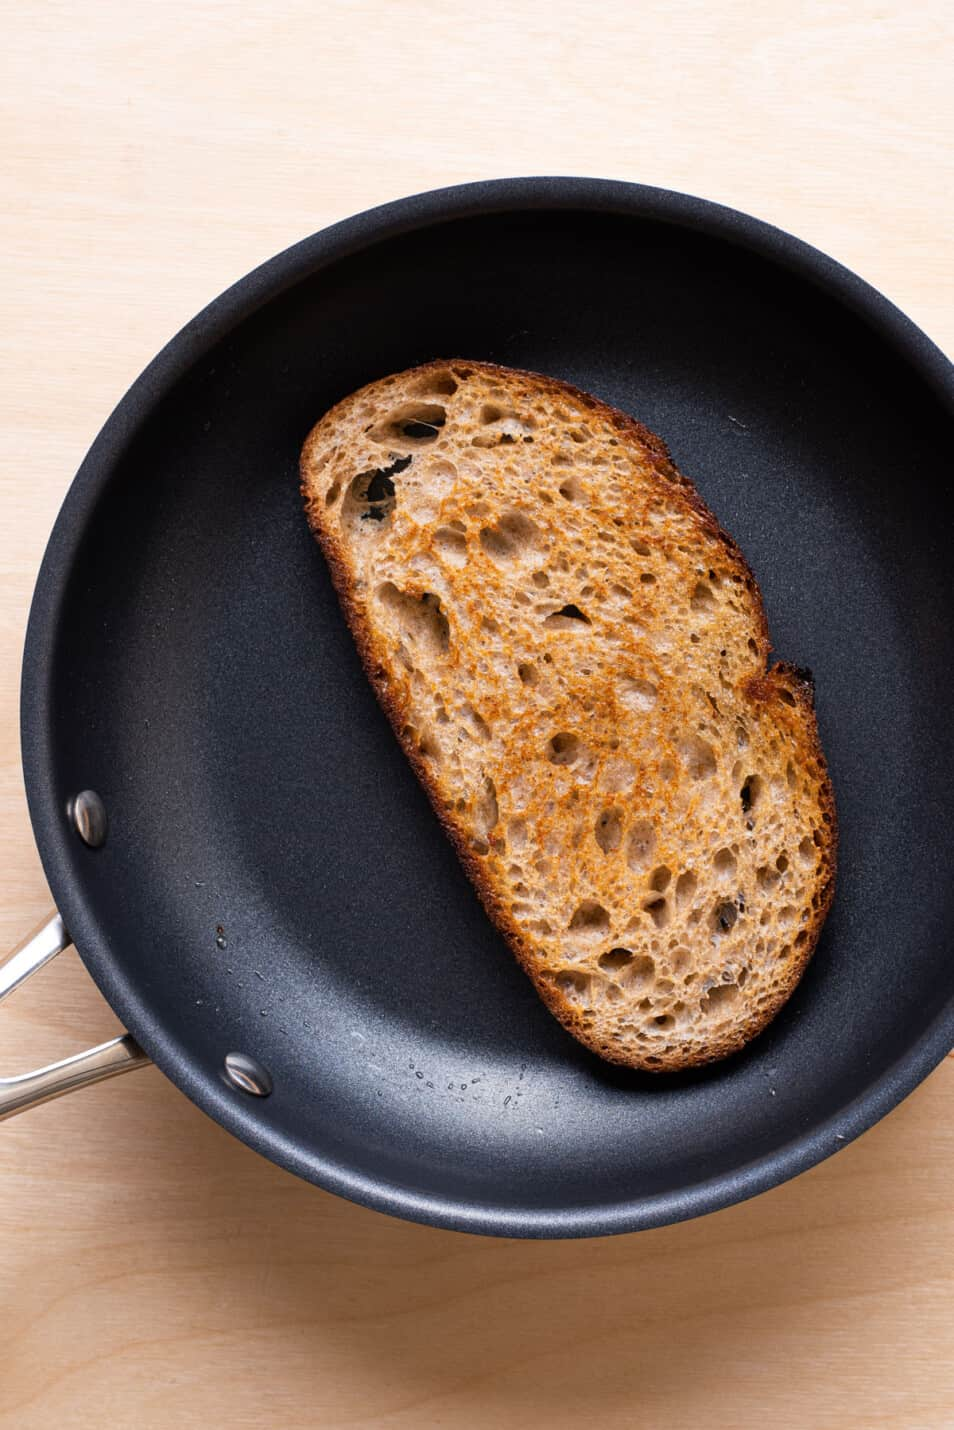 A slice of bread toasted in olive oil in a skillet.